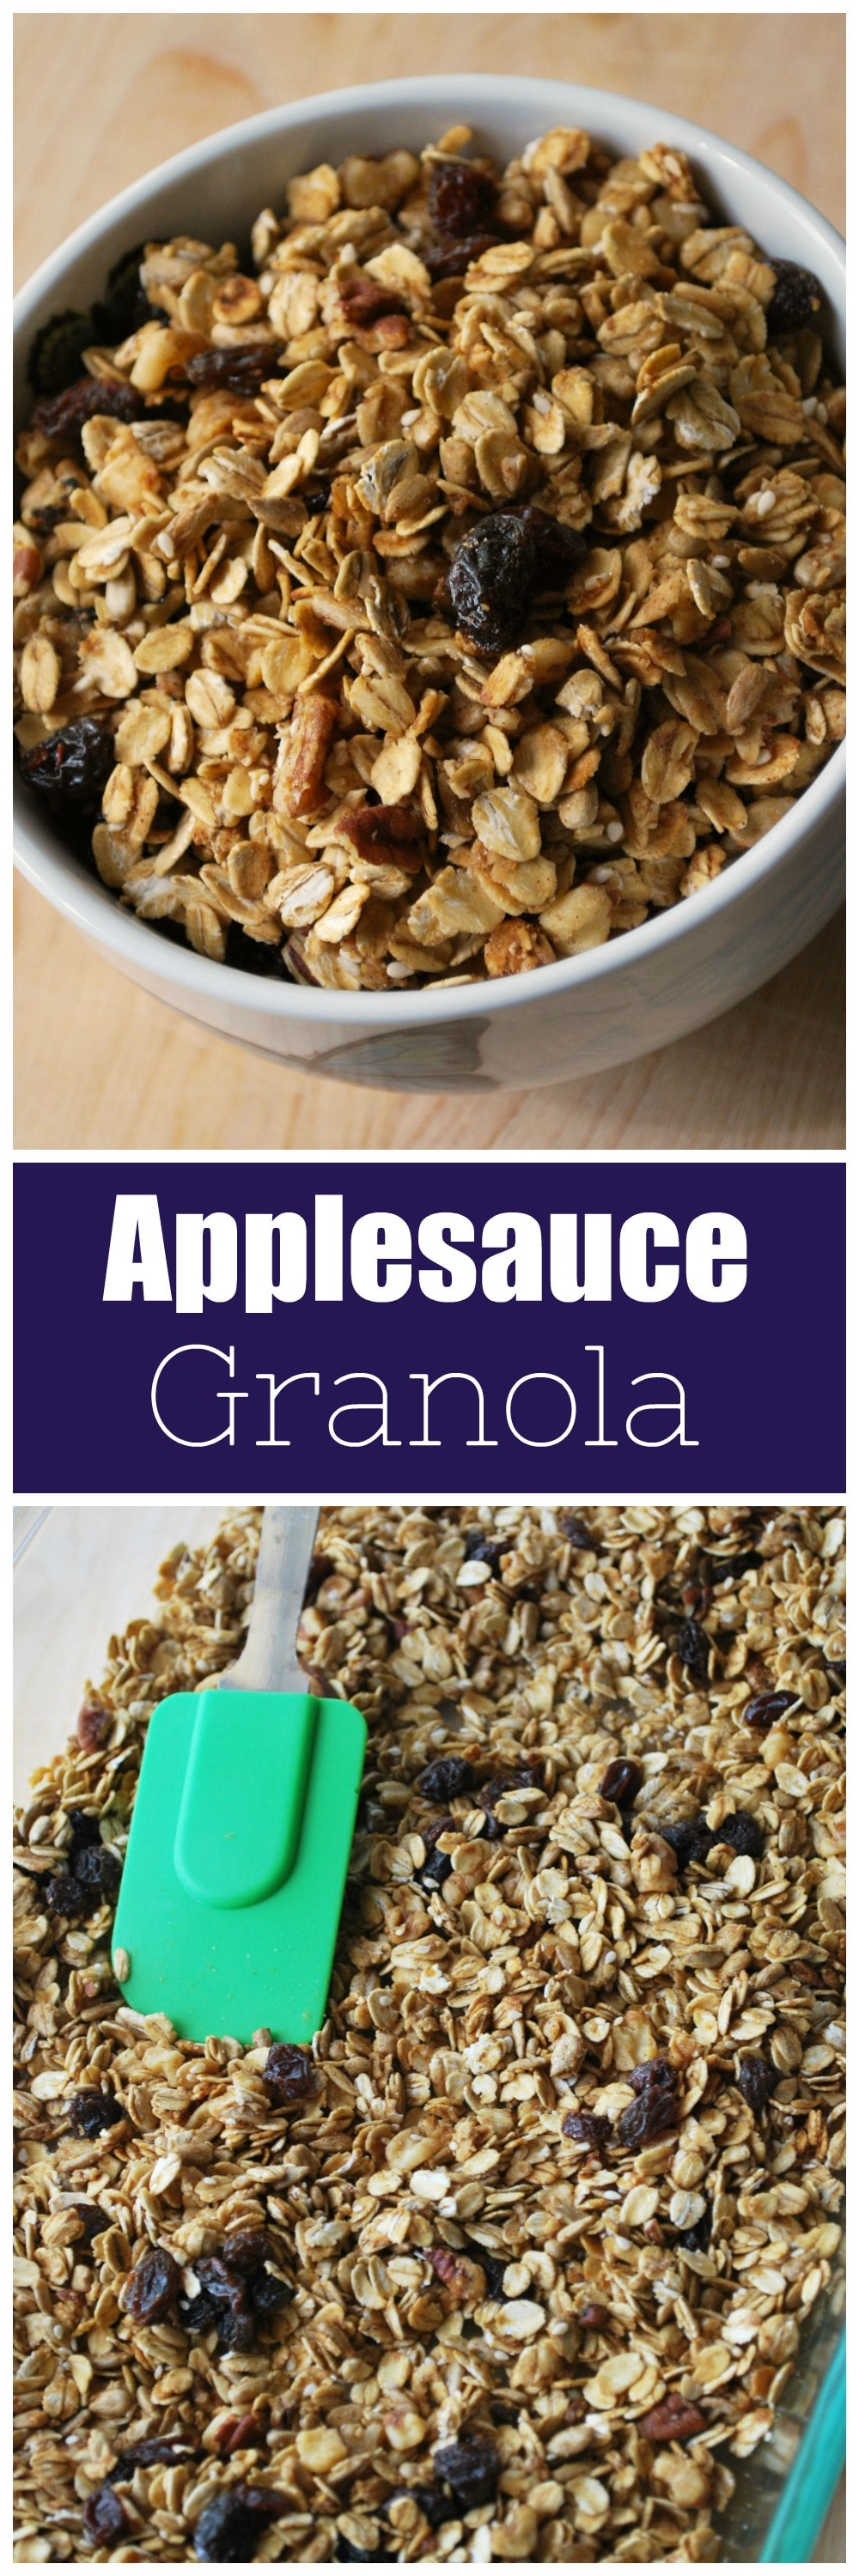 Applesauce Granola - healthy crunchy granola made with no oil! Oats, nuts, seeds, and raisins make the perfect easy breakfast.